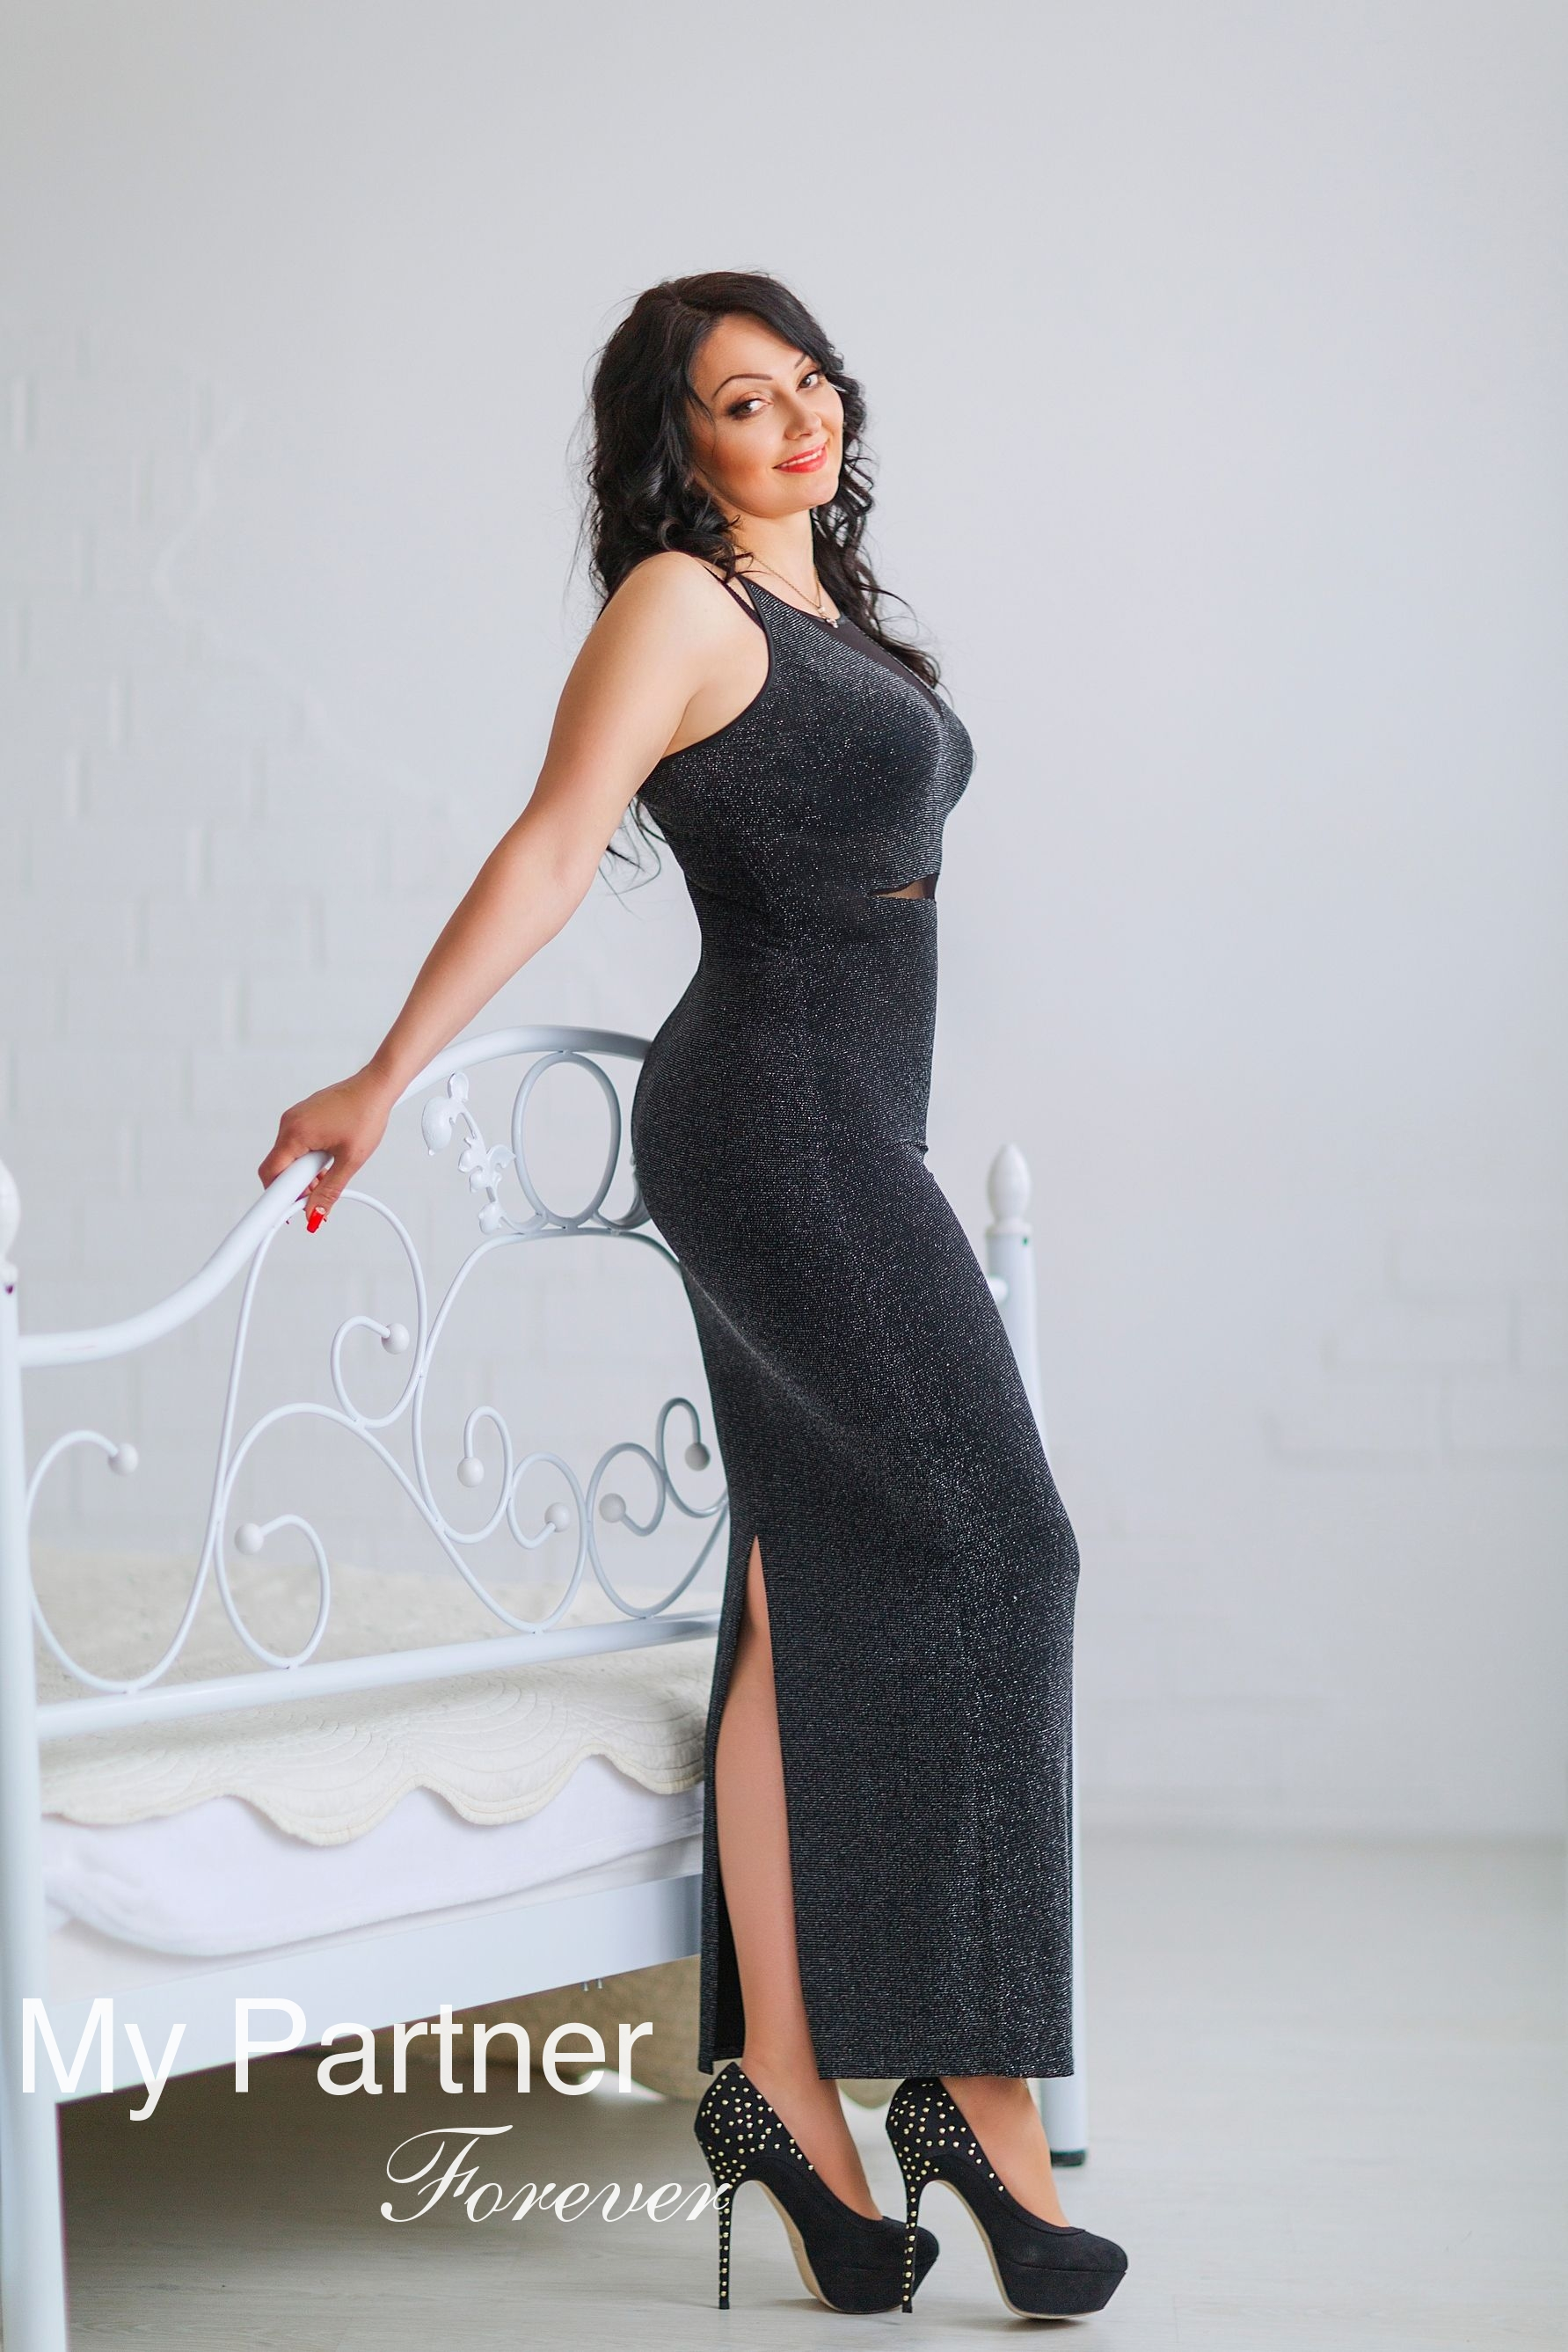 Dating with Beautiful Ukrainian Lady Alyona from Nikolaev, Ukraine